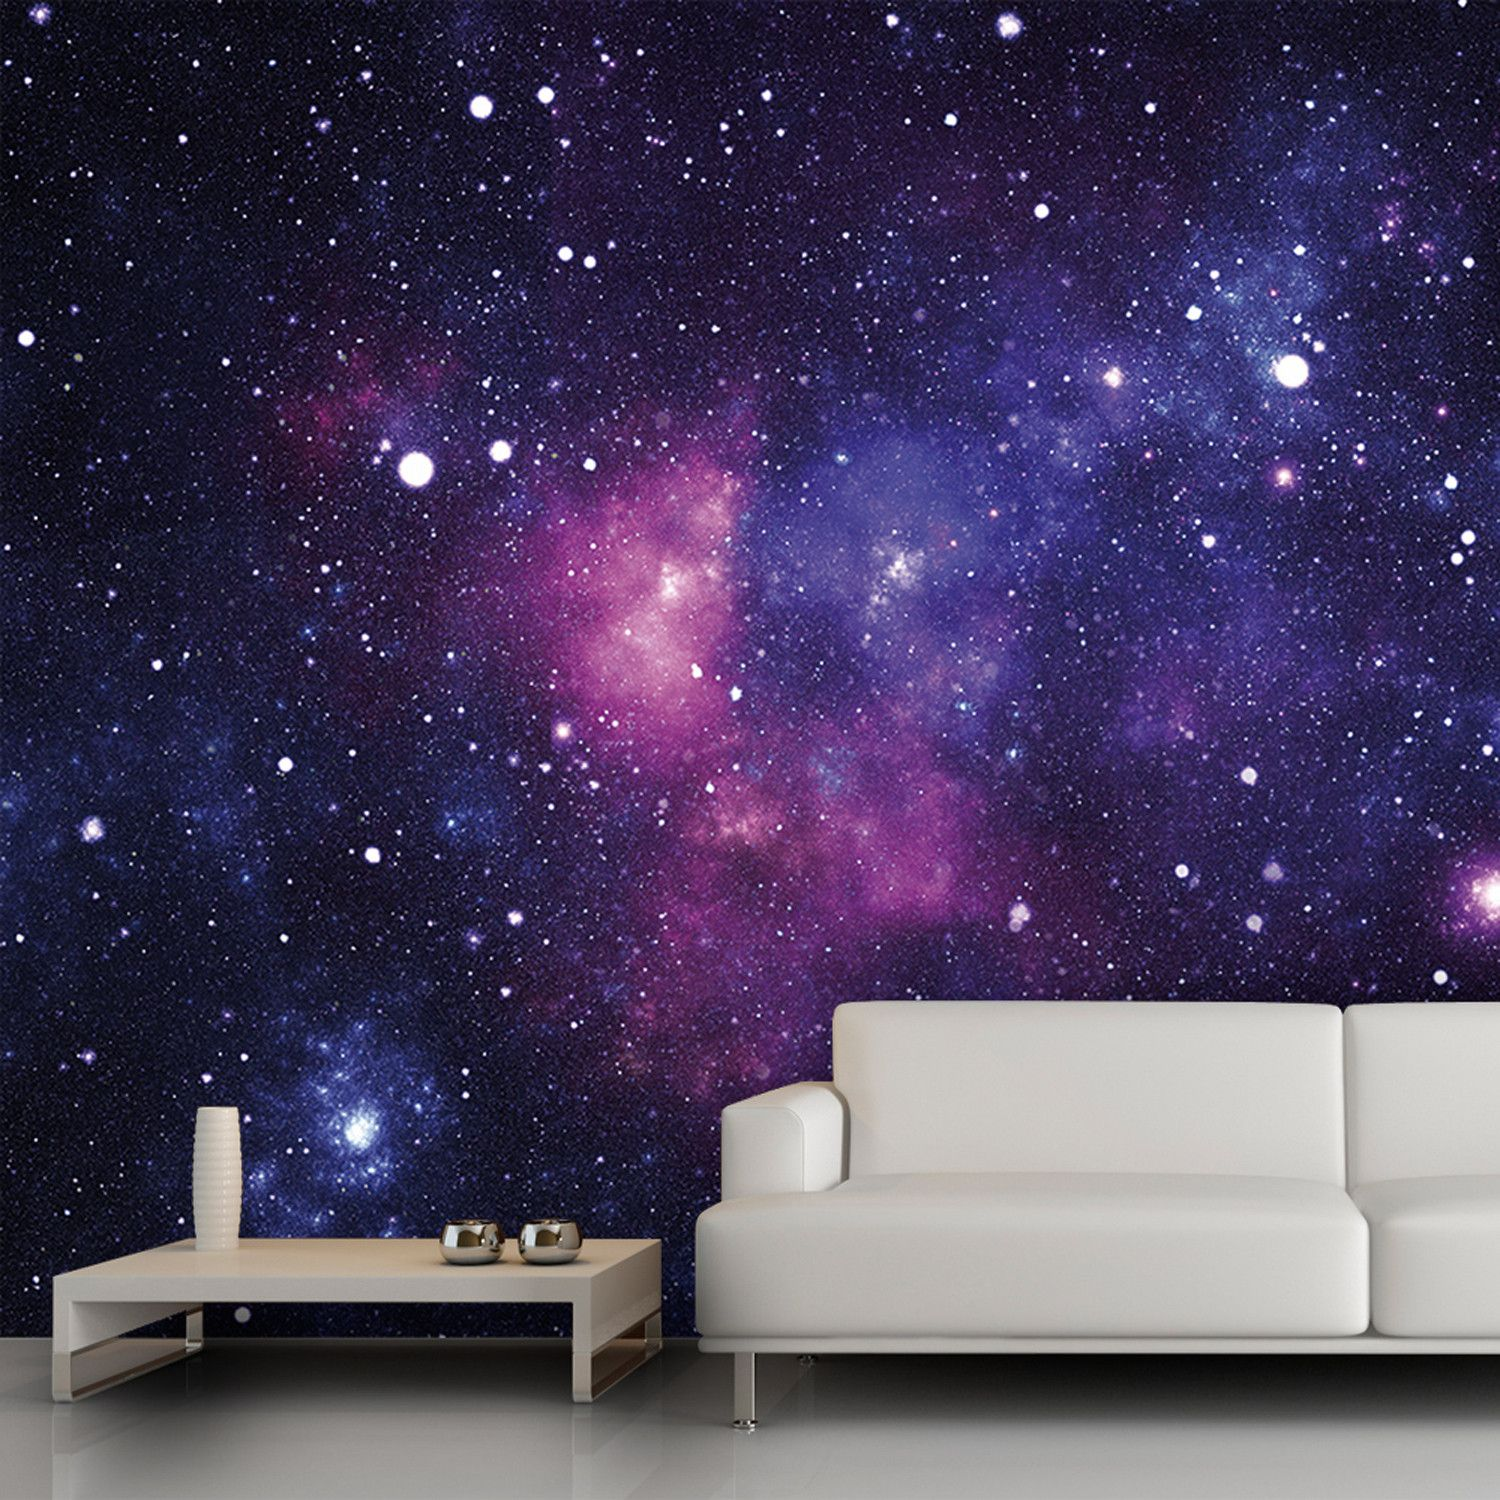 Galaxy Lights For Bedroom Galaxy Wall Mural 13 39x9 39 54 Trying To Think Of Cool